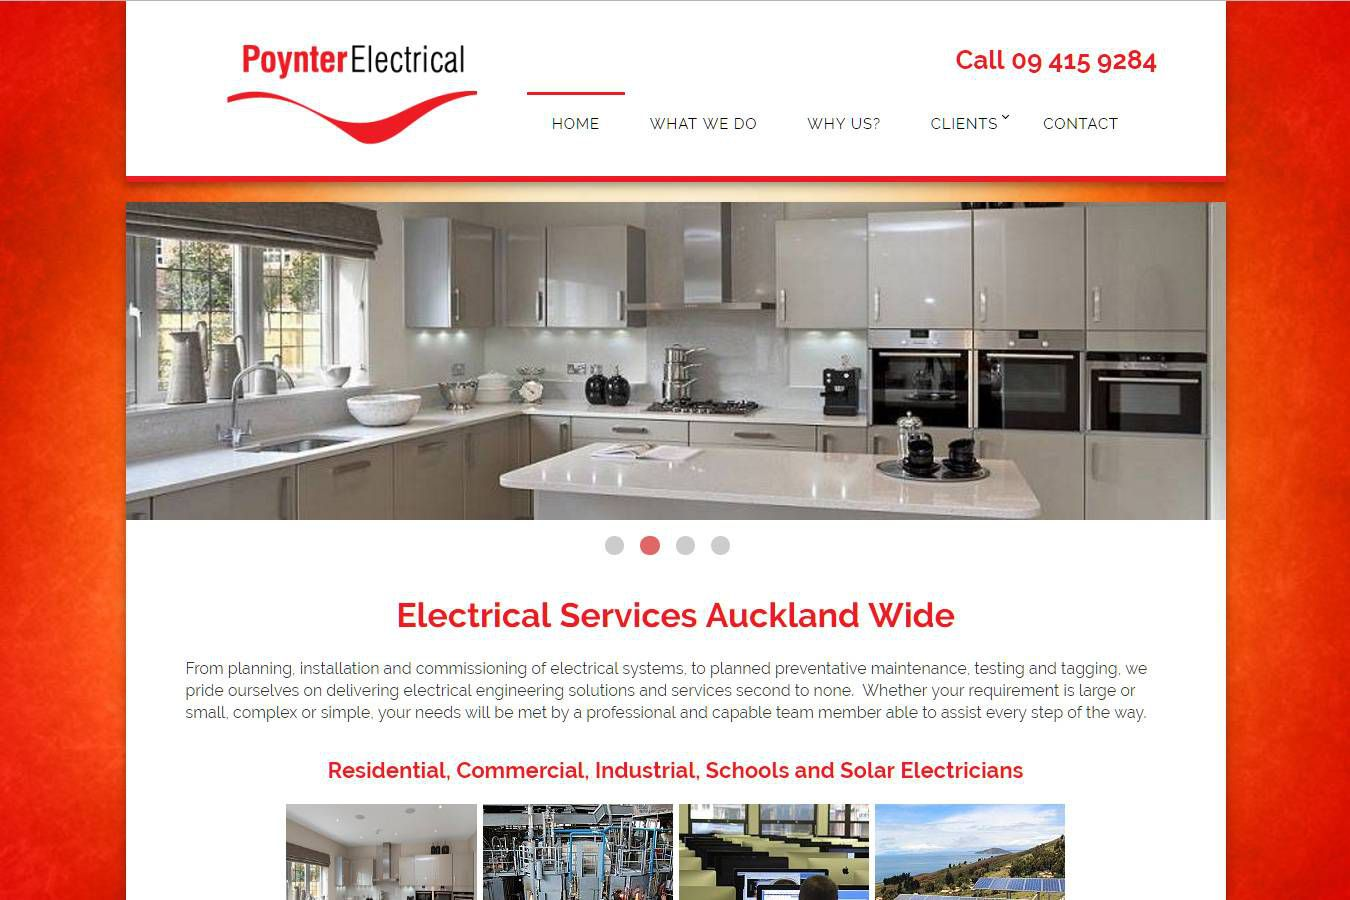 Poynter Electrical Website